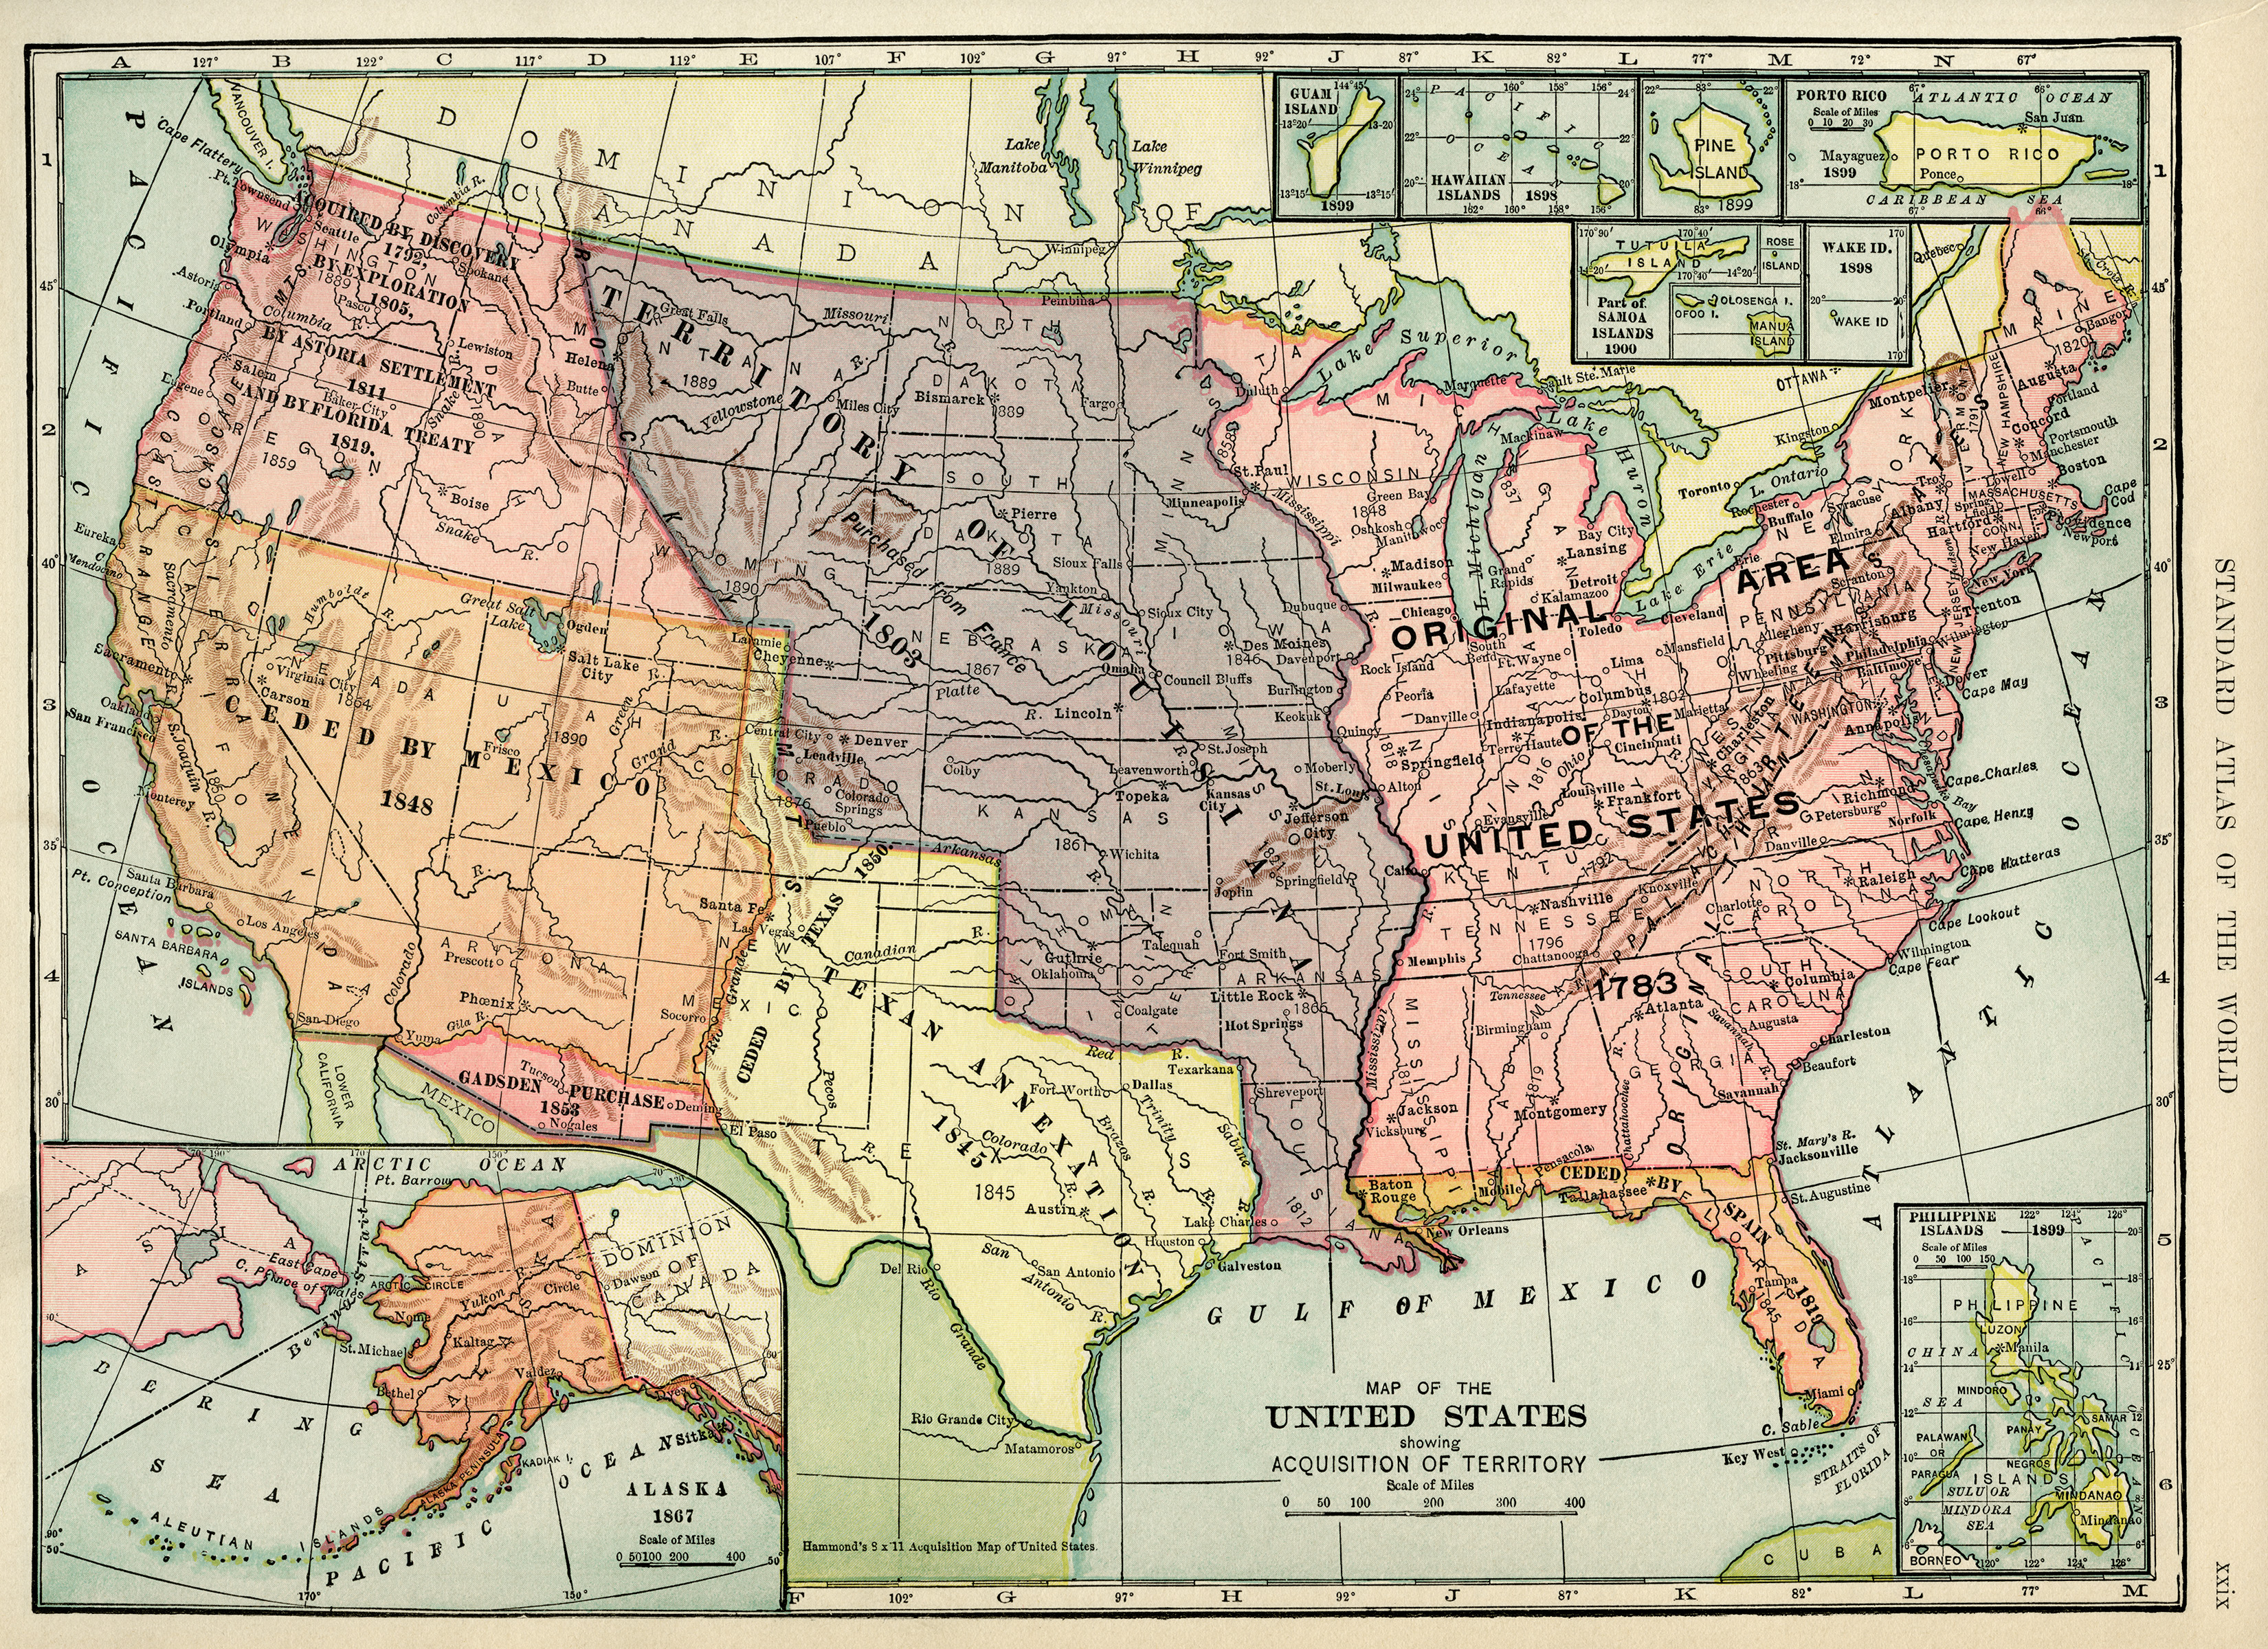 Maps Old Design Shop Blog - Maps of the united states